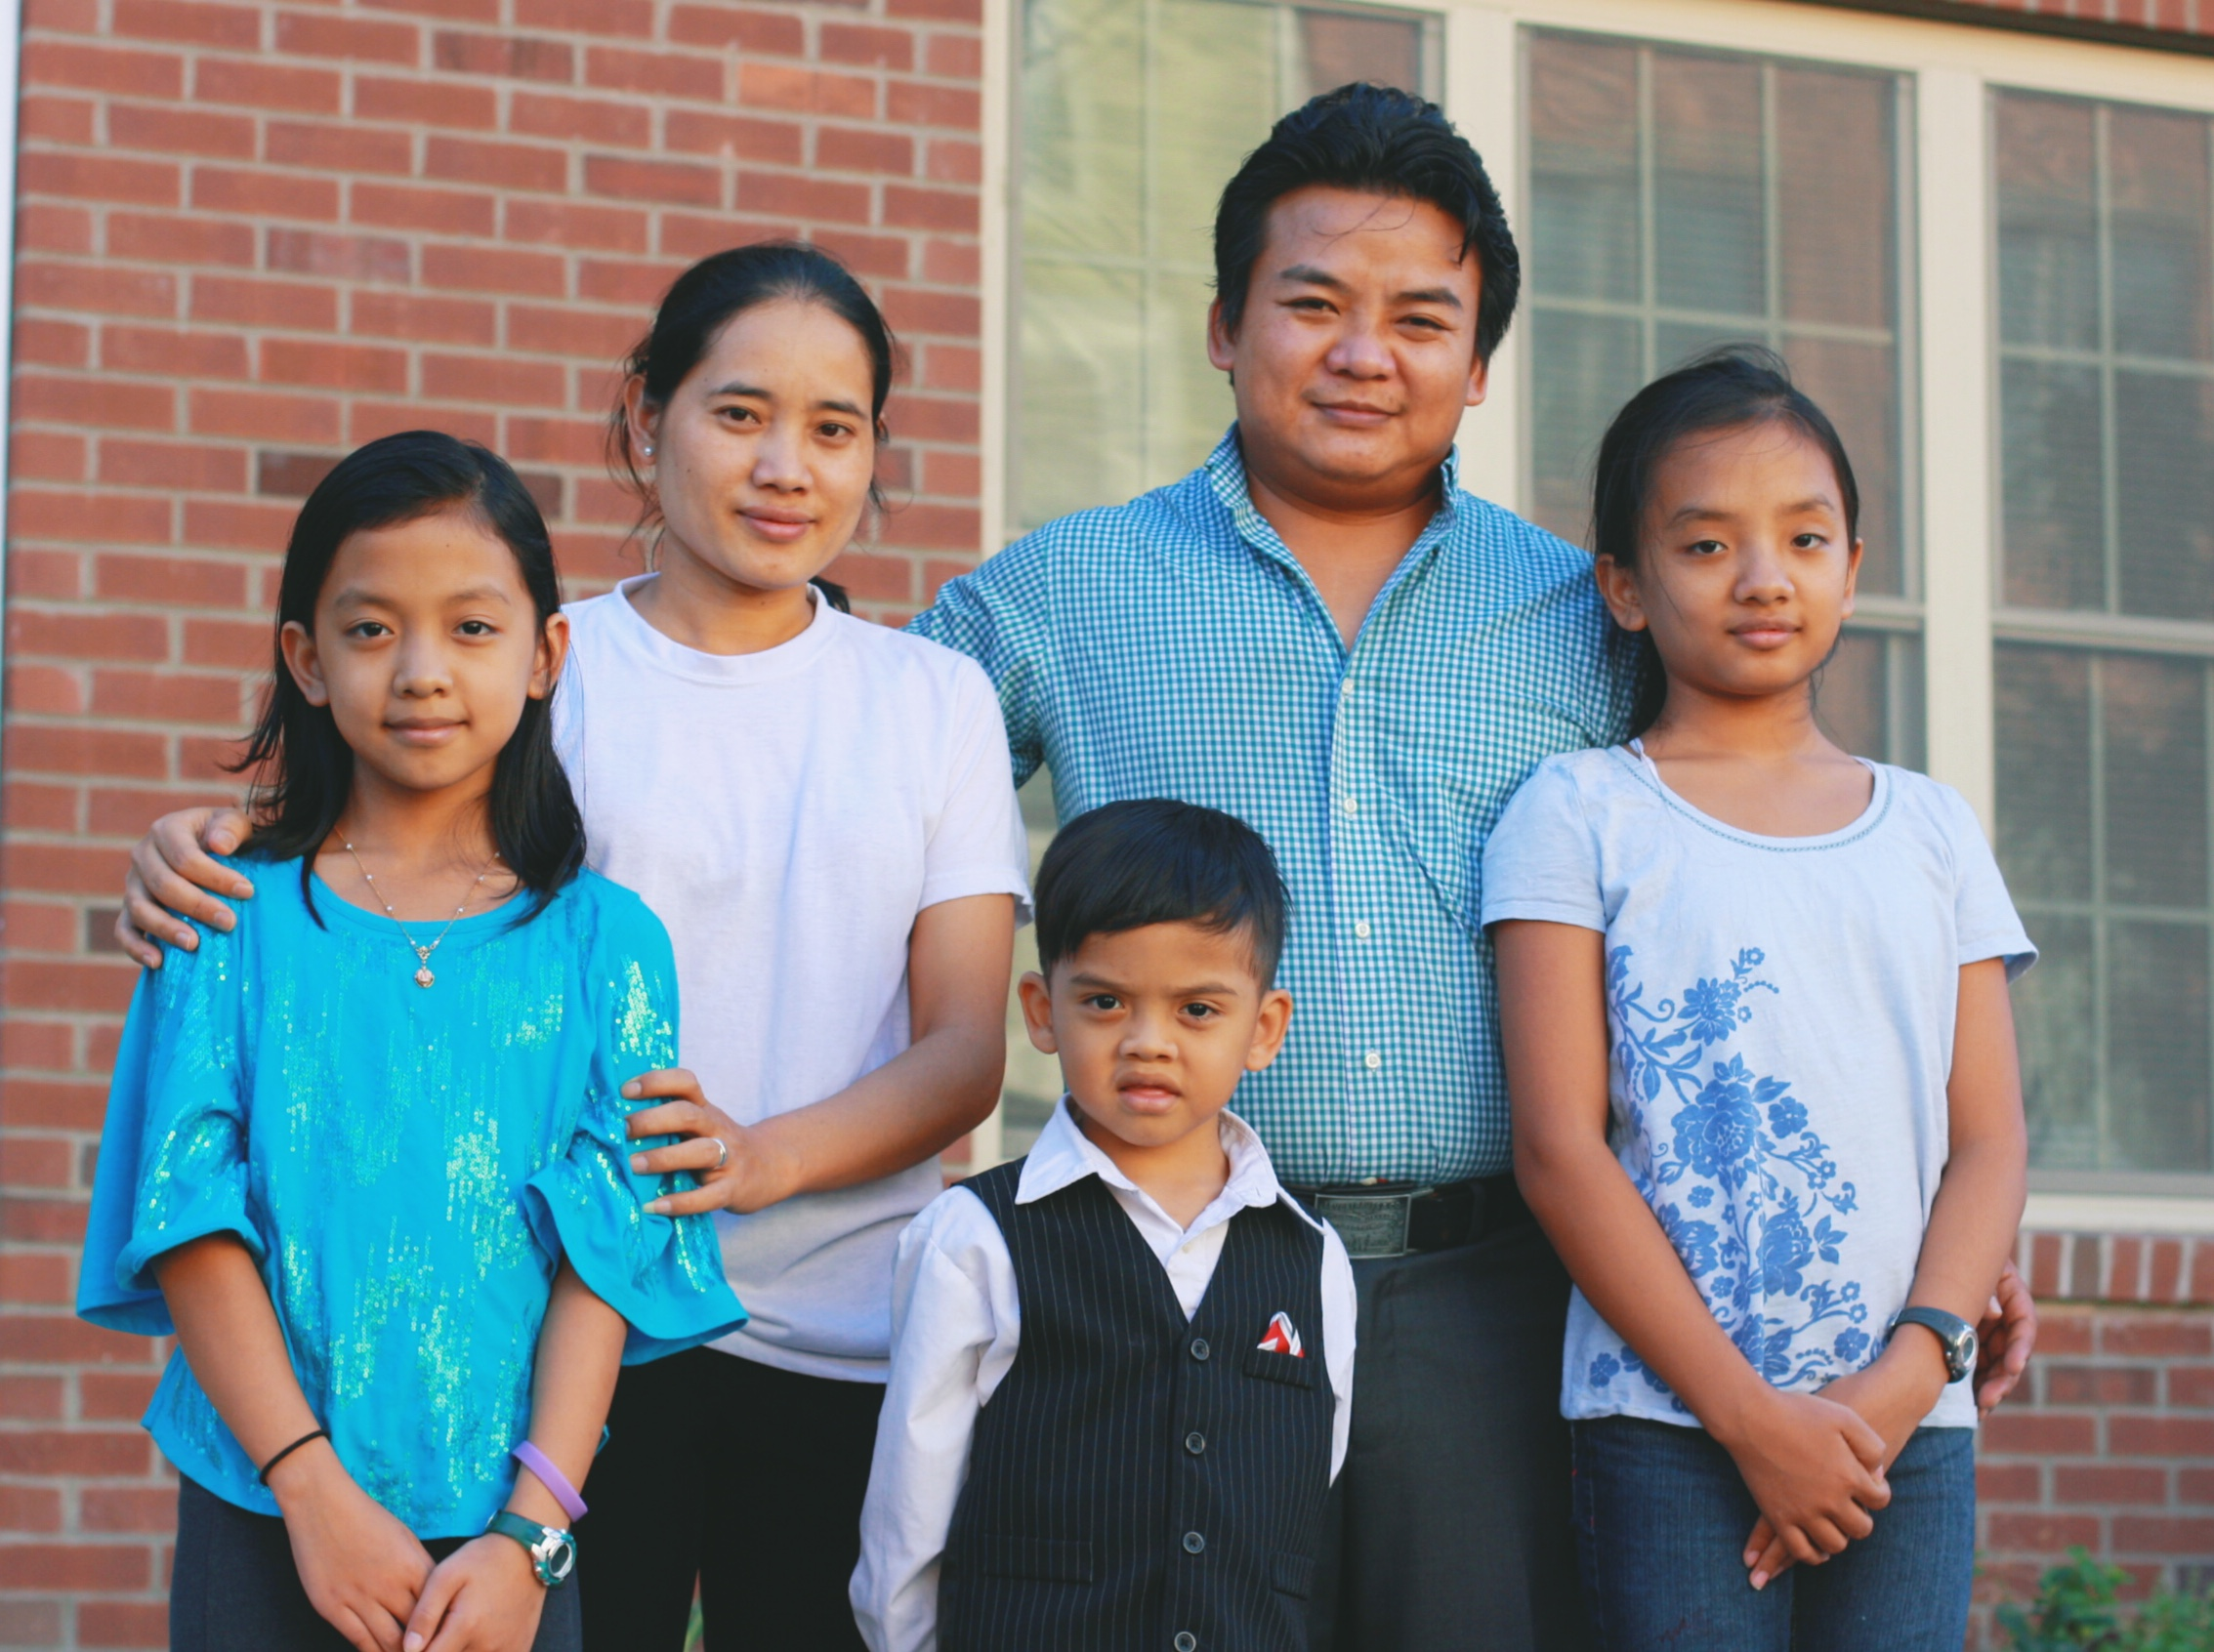 Homeowner Khoon Lin and his family outside their Habitat home. Your support helps more families like Khoon Lin's find stability here in our community.